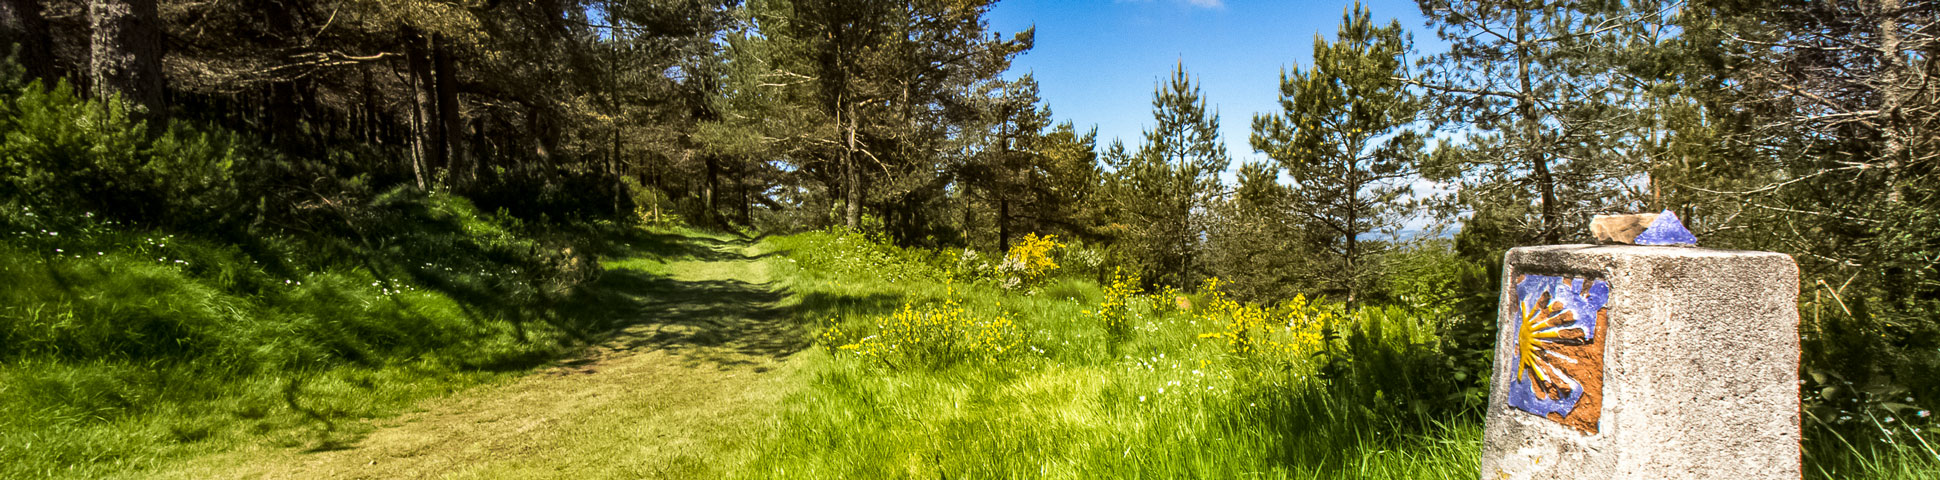 Panoramic view from Complete Camino de Santiago